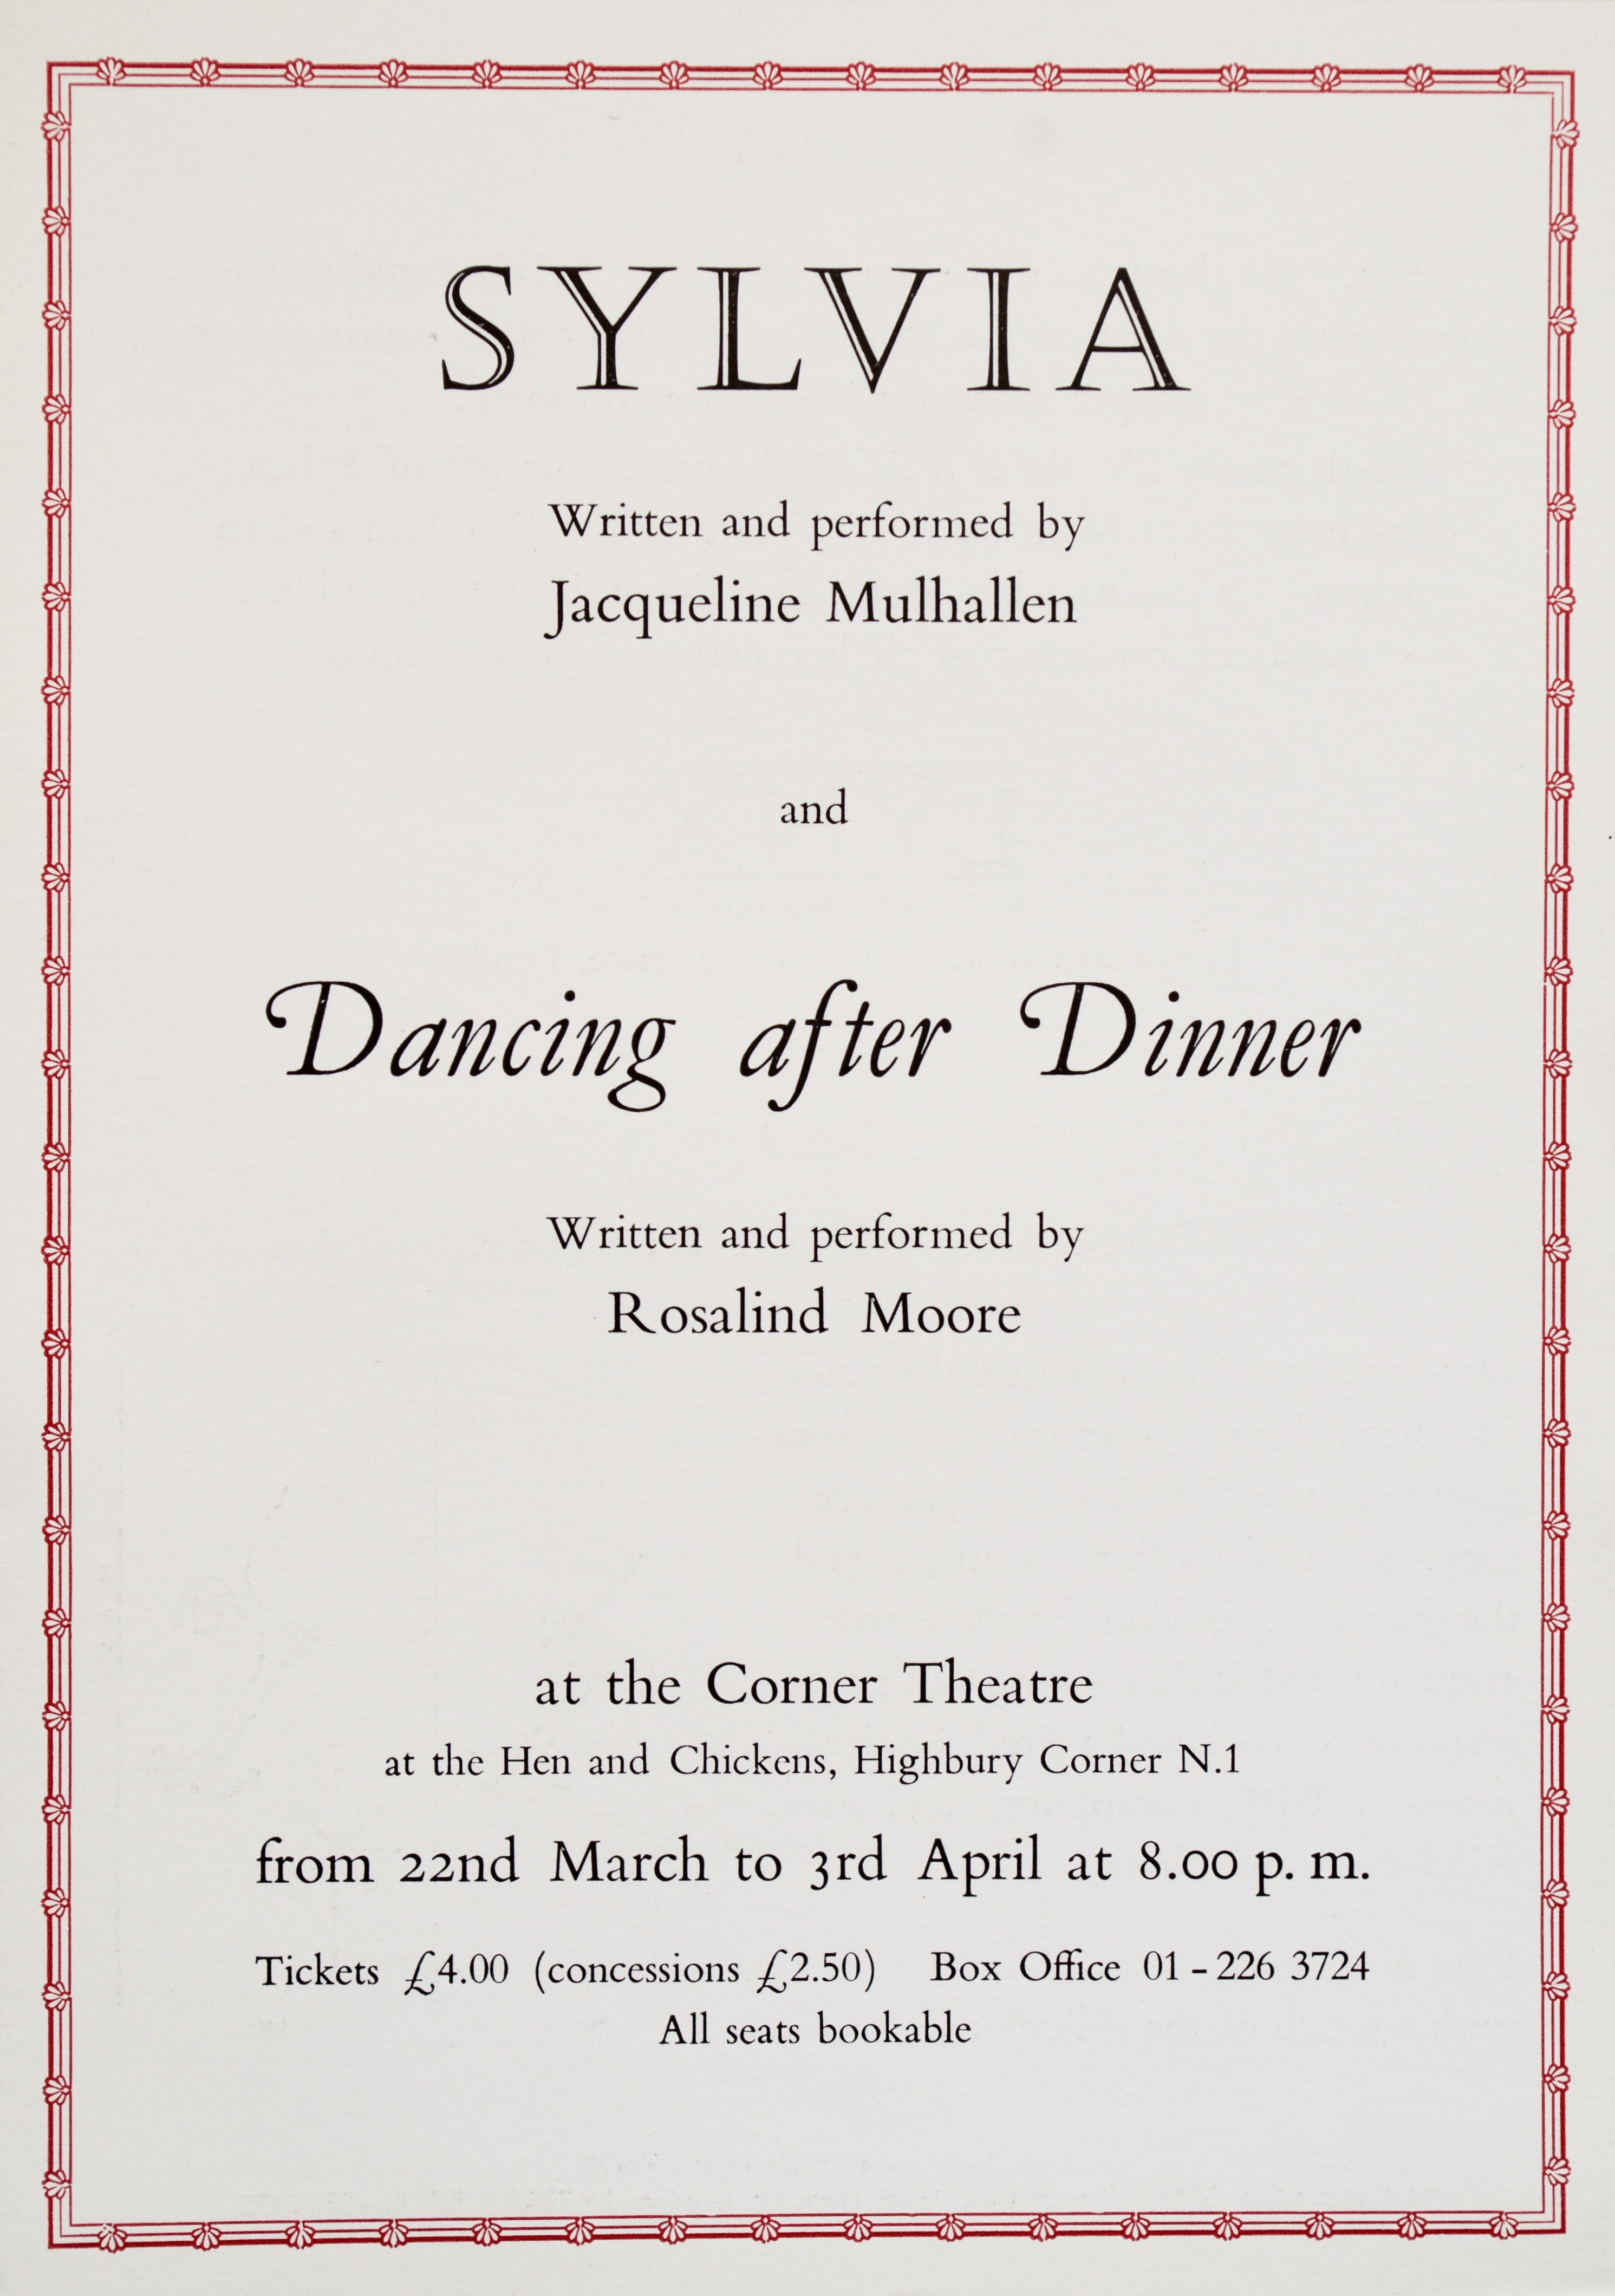 Sylvia leaflet 1988 (front)